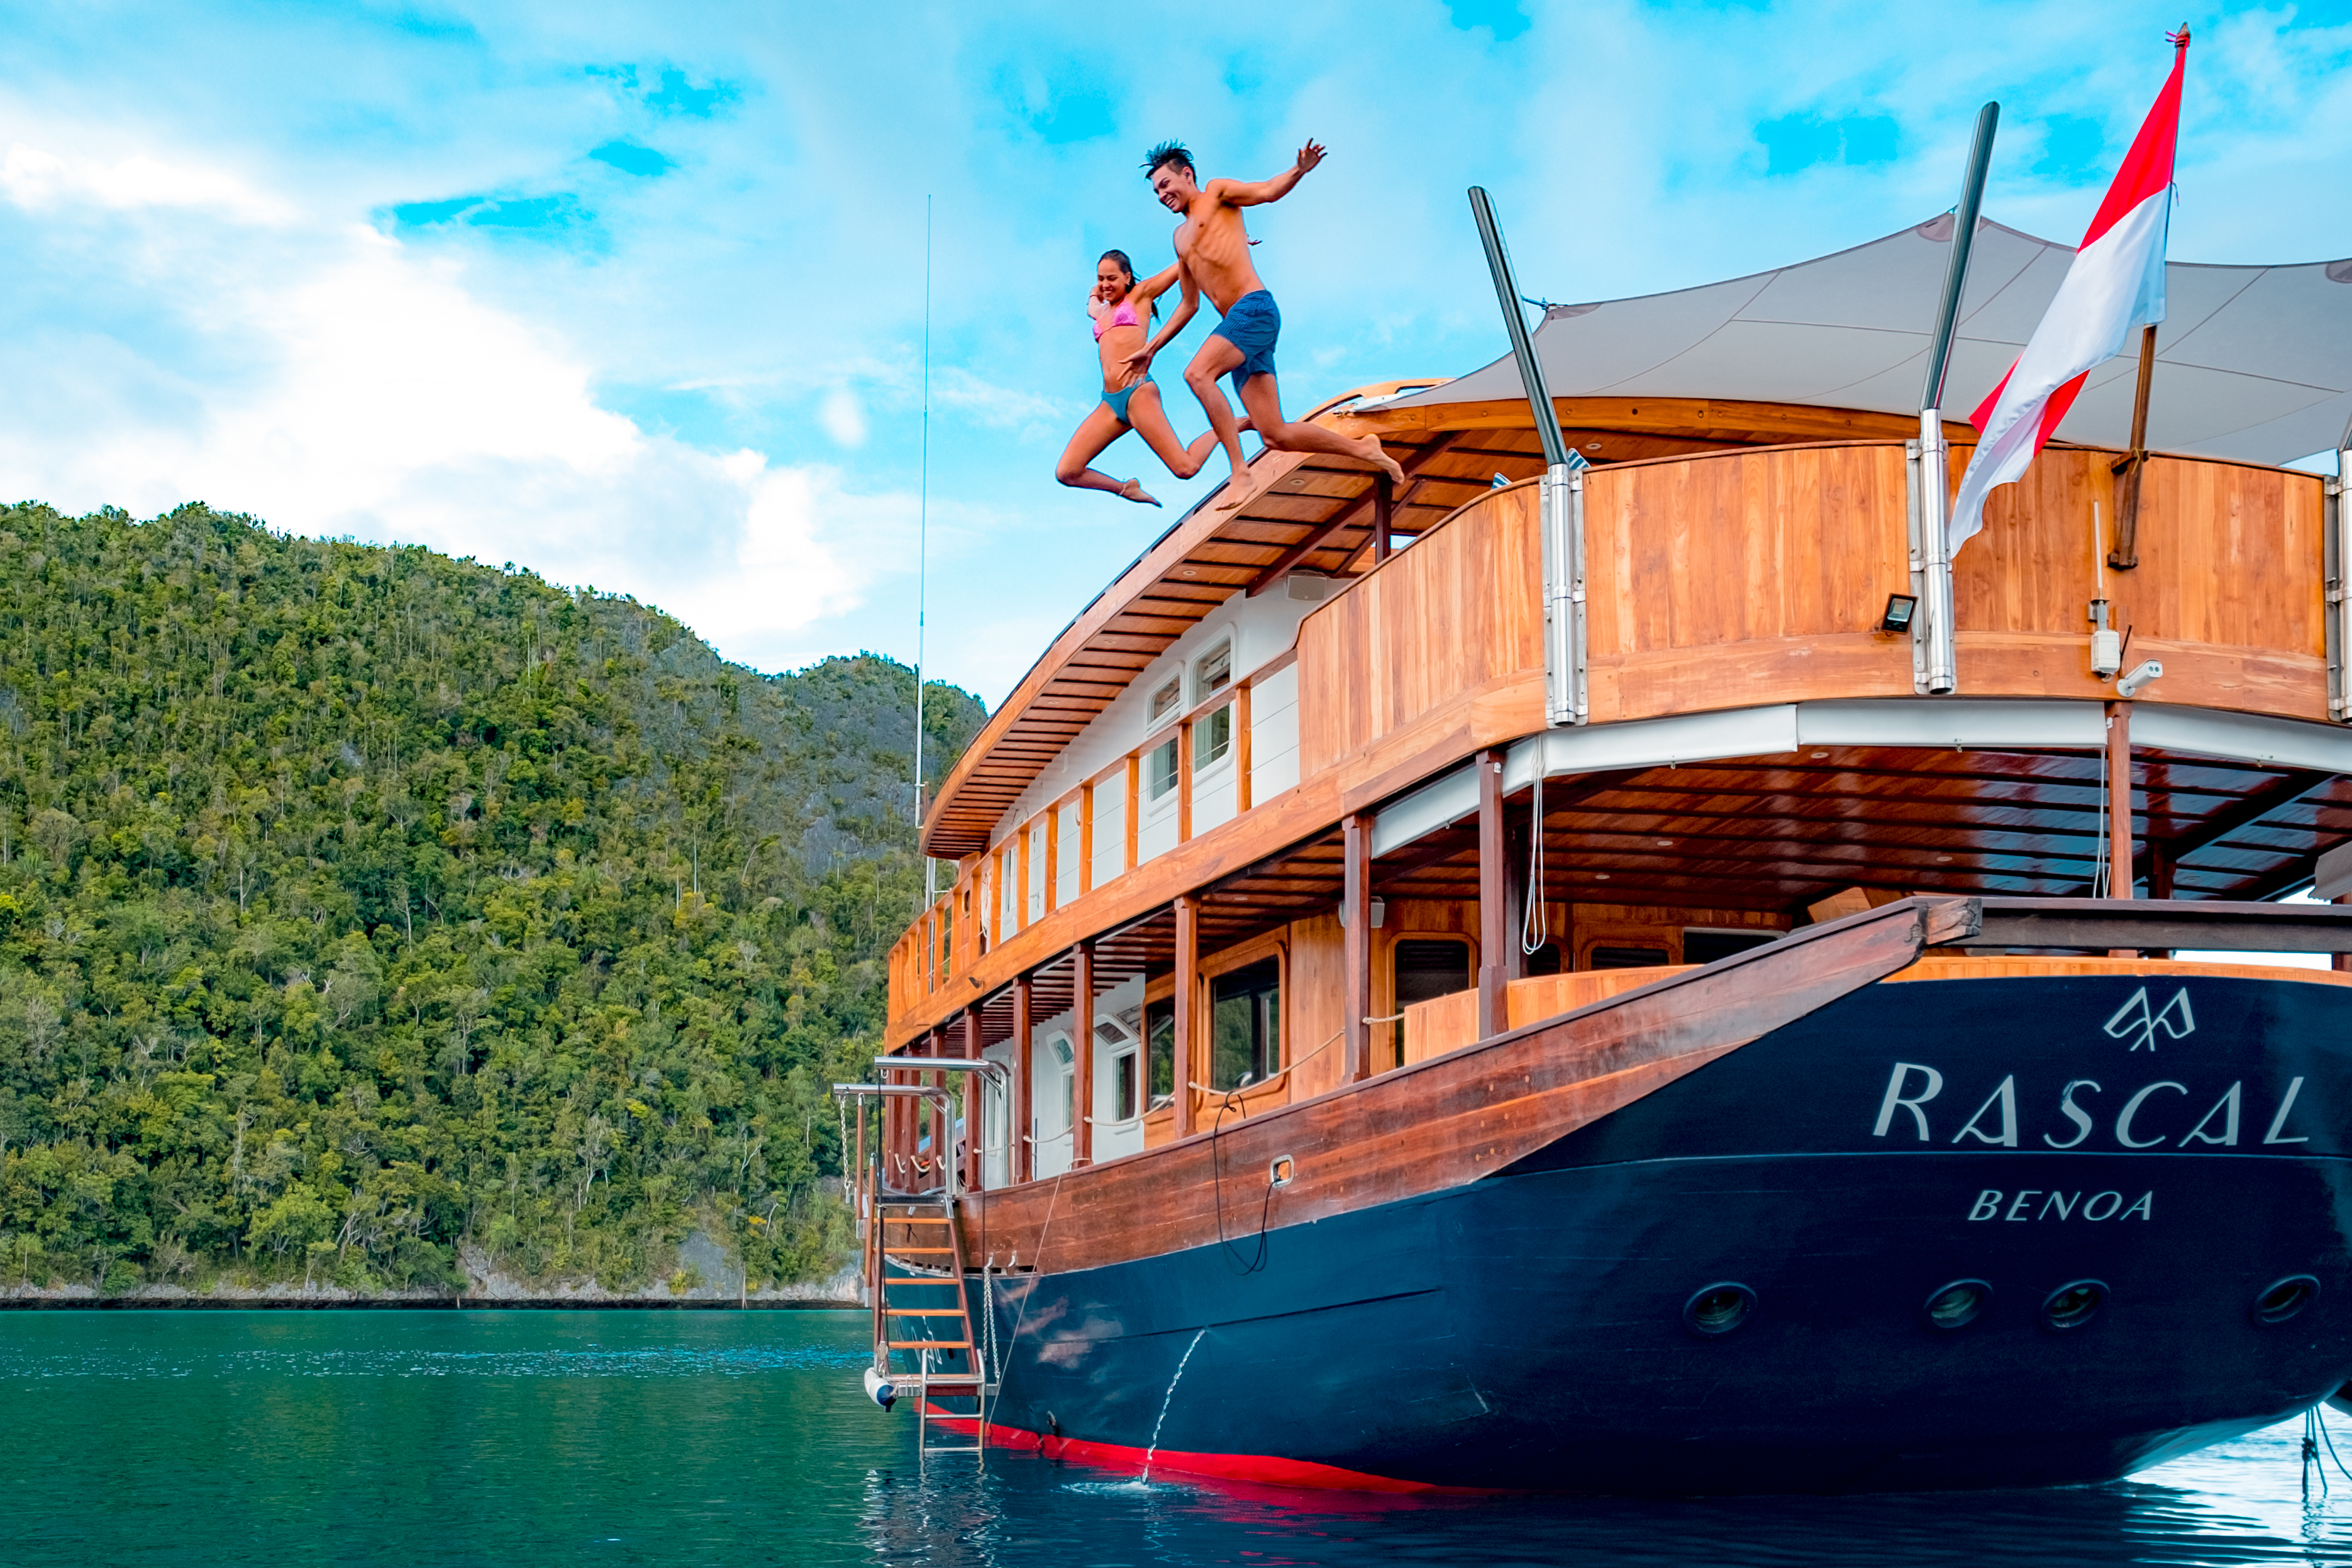 couple jumping off the top deck of yacht Rascal